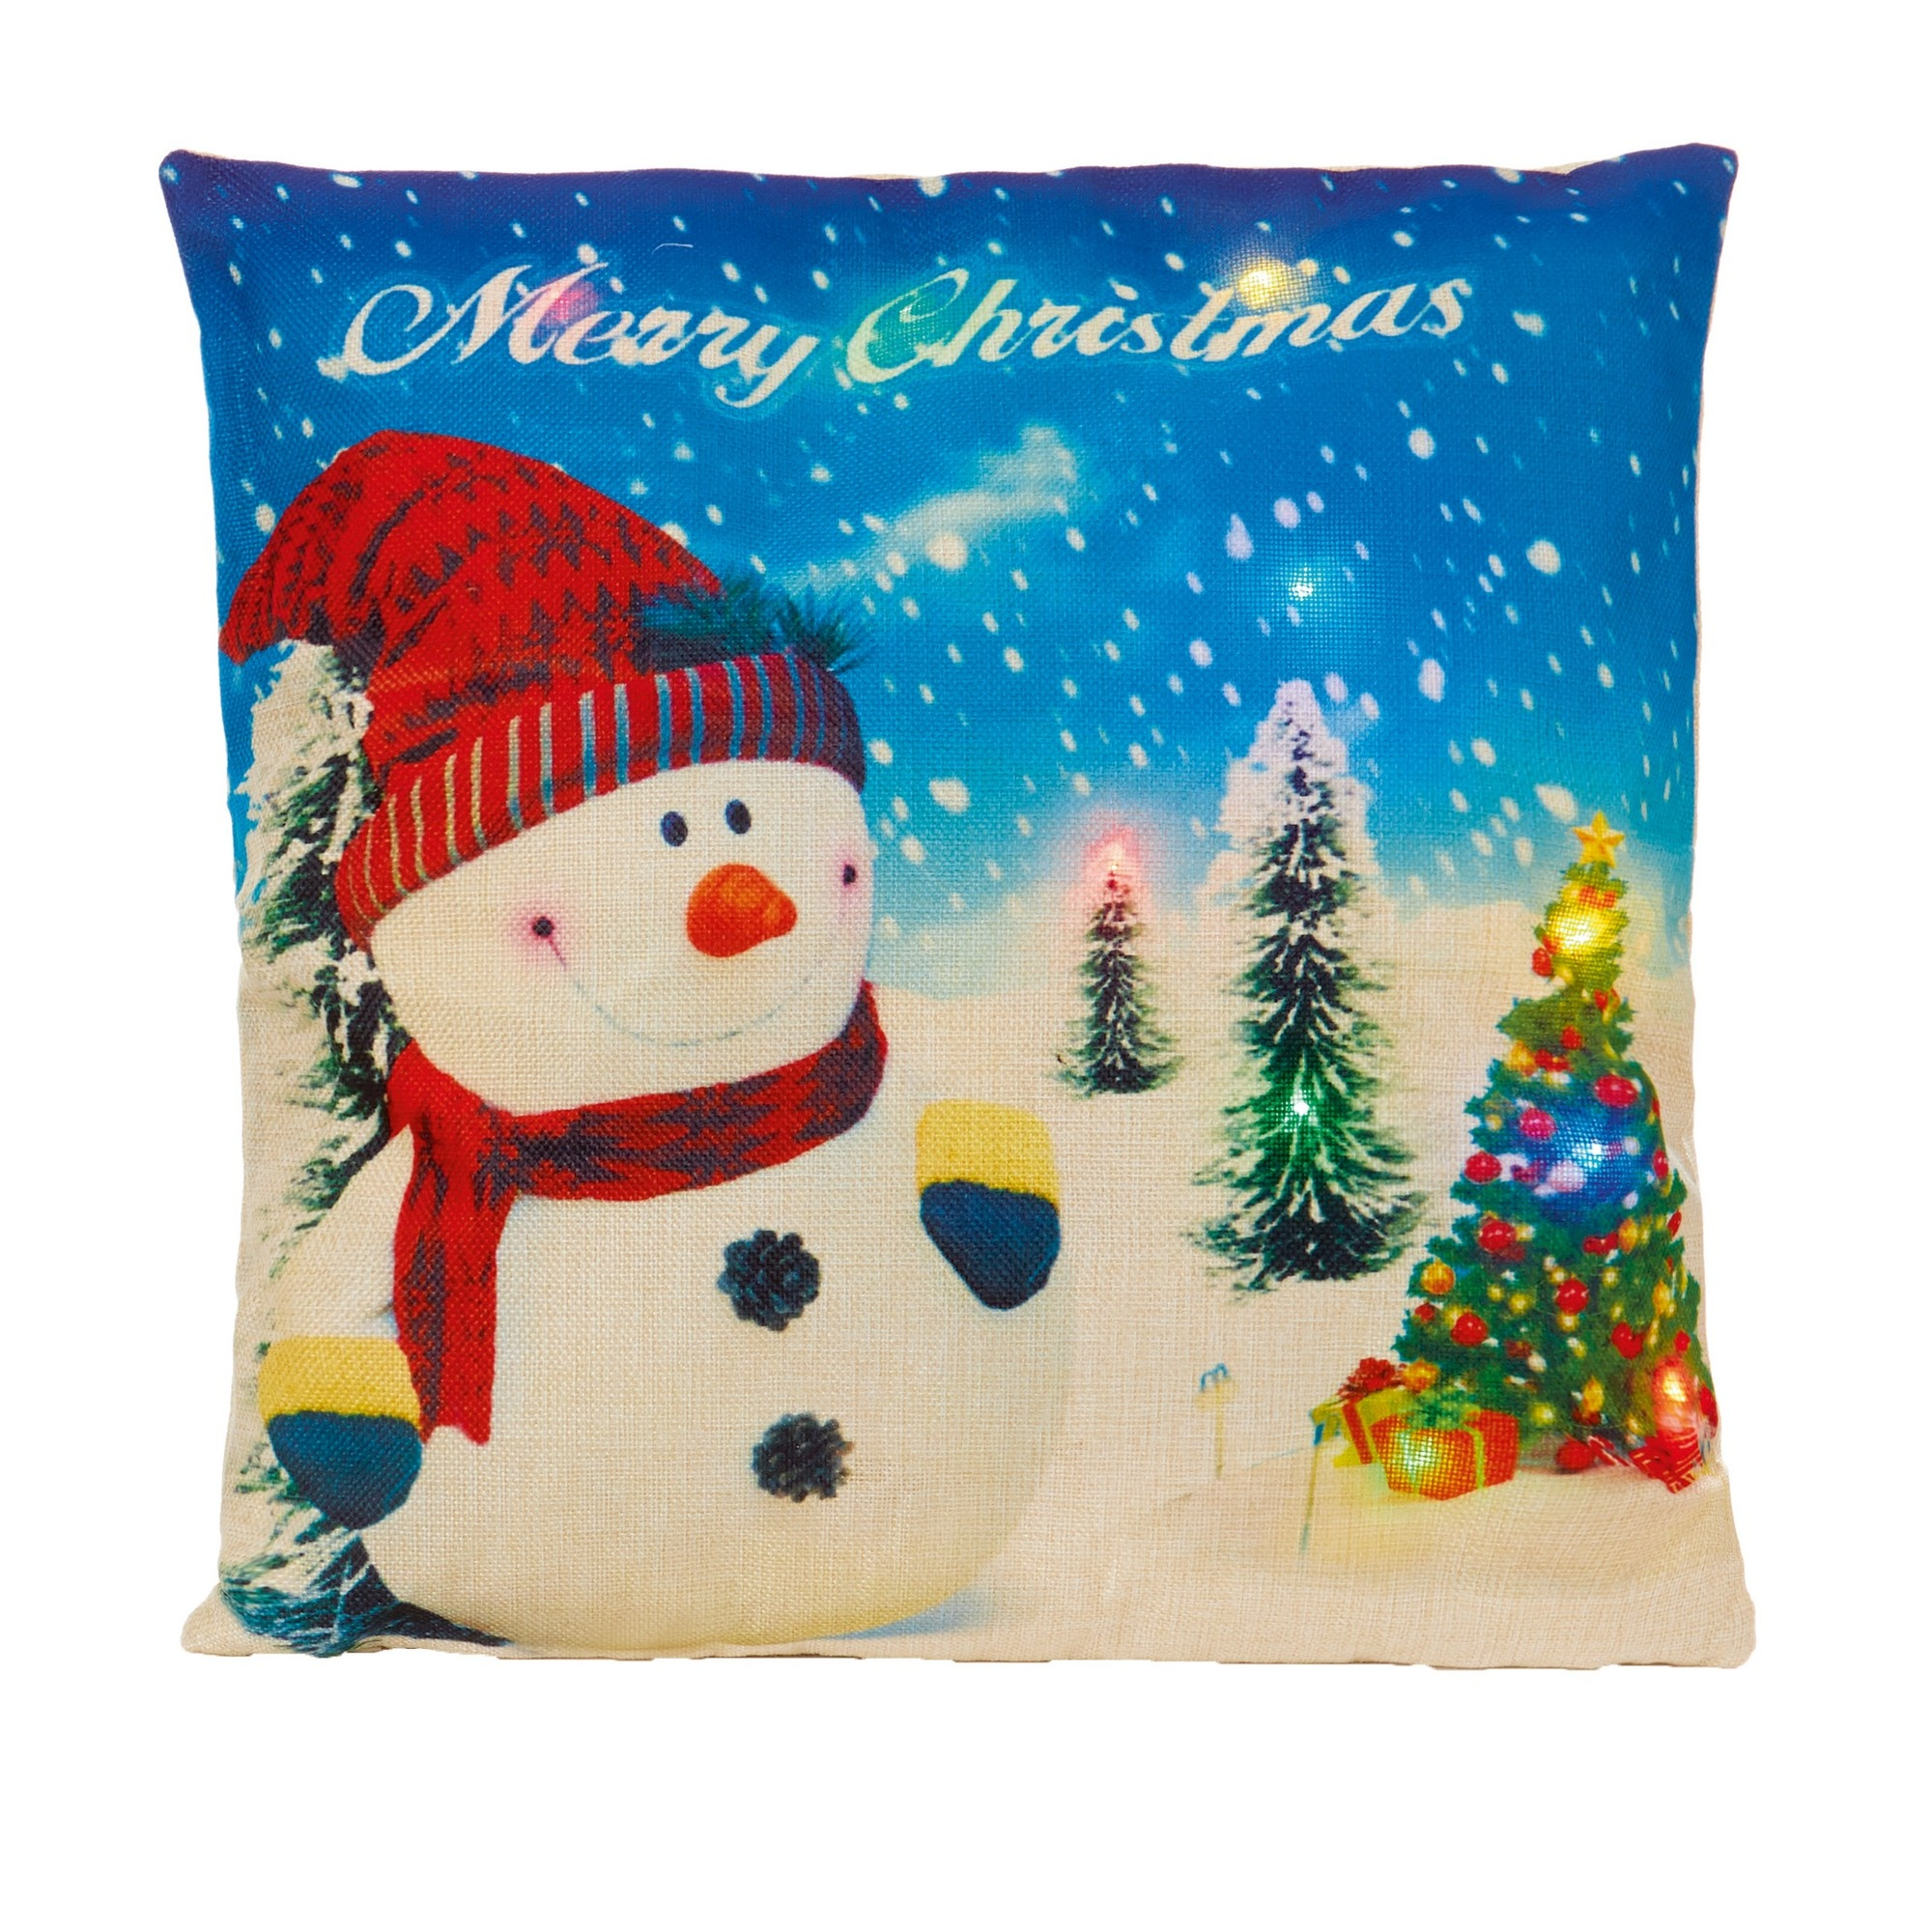 Christmas Shop Battery Operated LED Cushion (One Size) (Snowman)